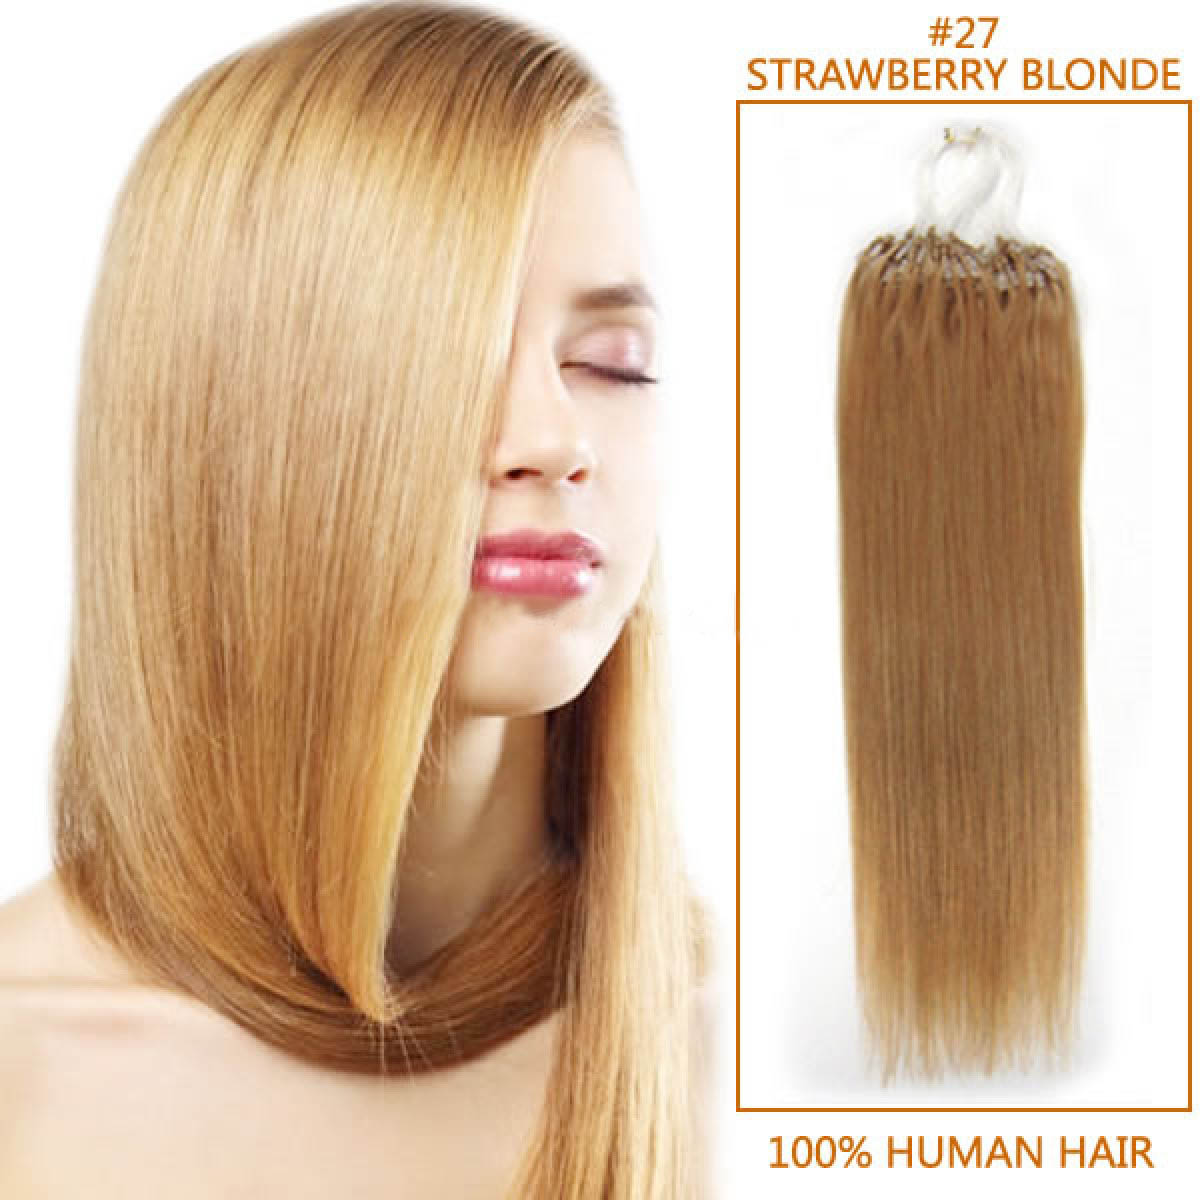 16 Inch 27 Strawberry Blonde Micro Loop Human Hair Extensions 100s 100g